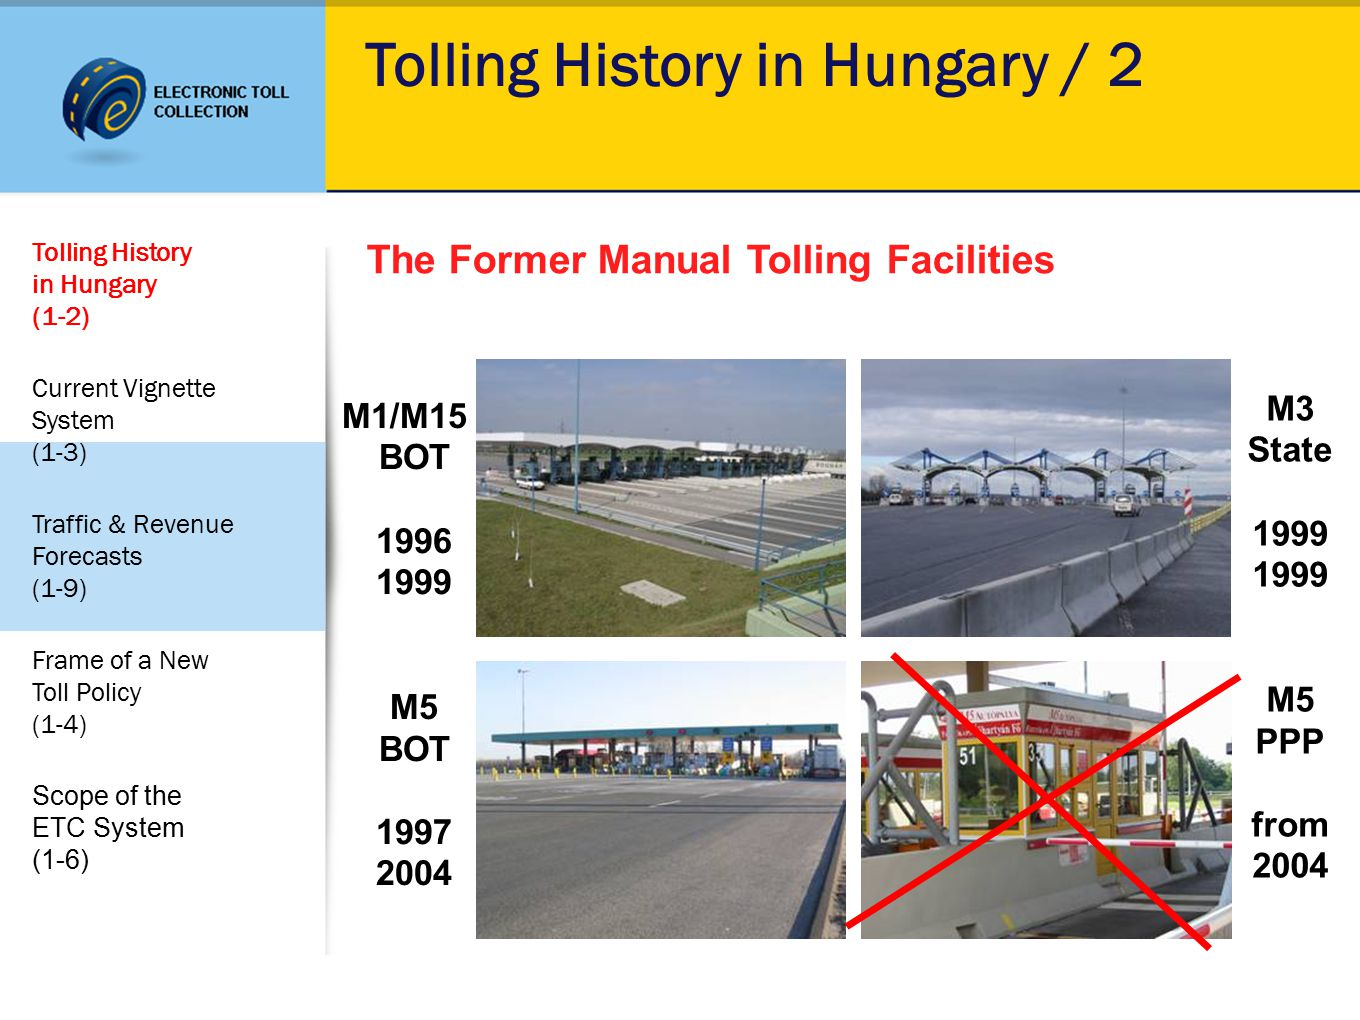 Tolling History in Hungary / 2 The Former Manual Tolling Facilities M1/M15 BOT 1996 1999 M5 BOT 1997 2004 M3 State 1999 1999 M5 PPP from 2004 Tolling History in Hungary (1-2) Current Vignette System (1-3) Traffic & Revenue Forecasts (1-9) Frame of a New Toll Policy (1-4) Scope of the ETC System (1-6)